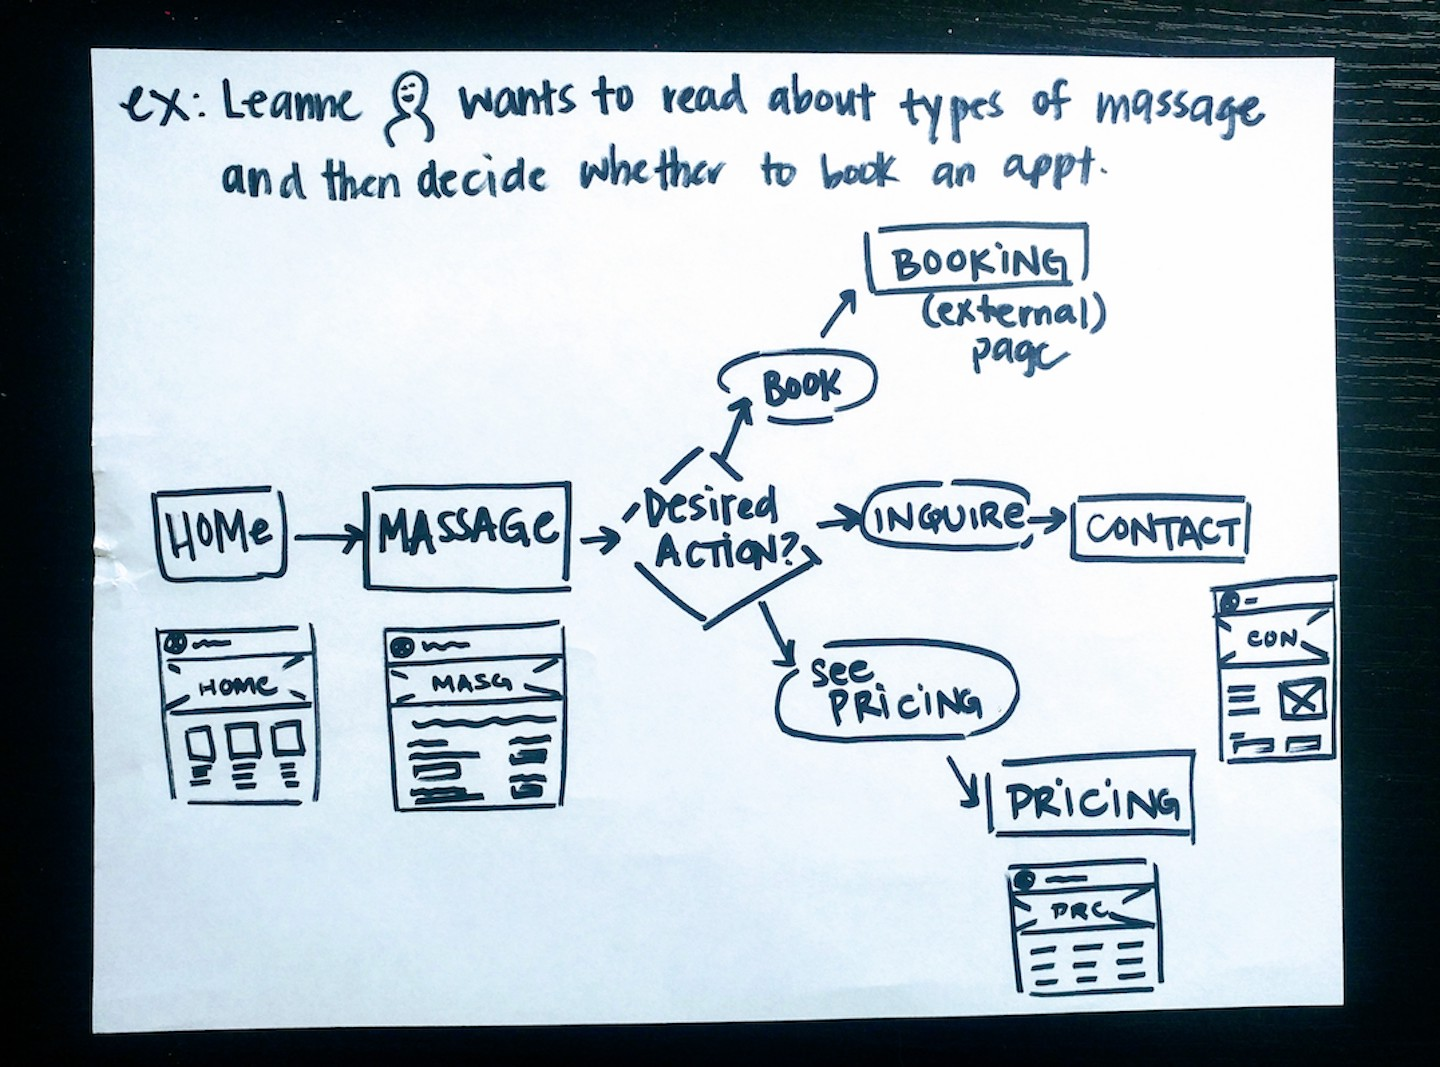 Hand-drawn diagram showing a sample pathway a person might take on the website in order to book an appointment.